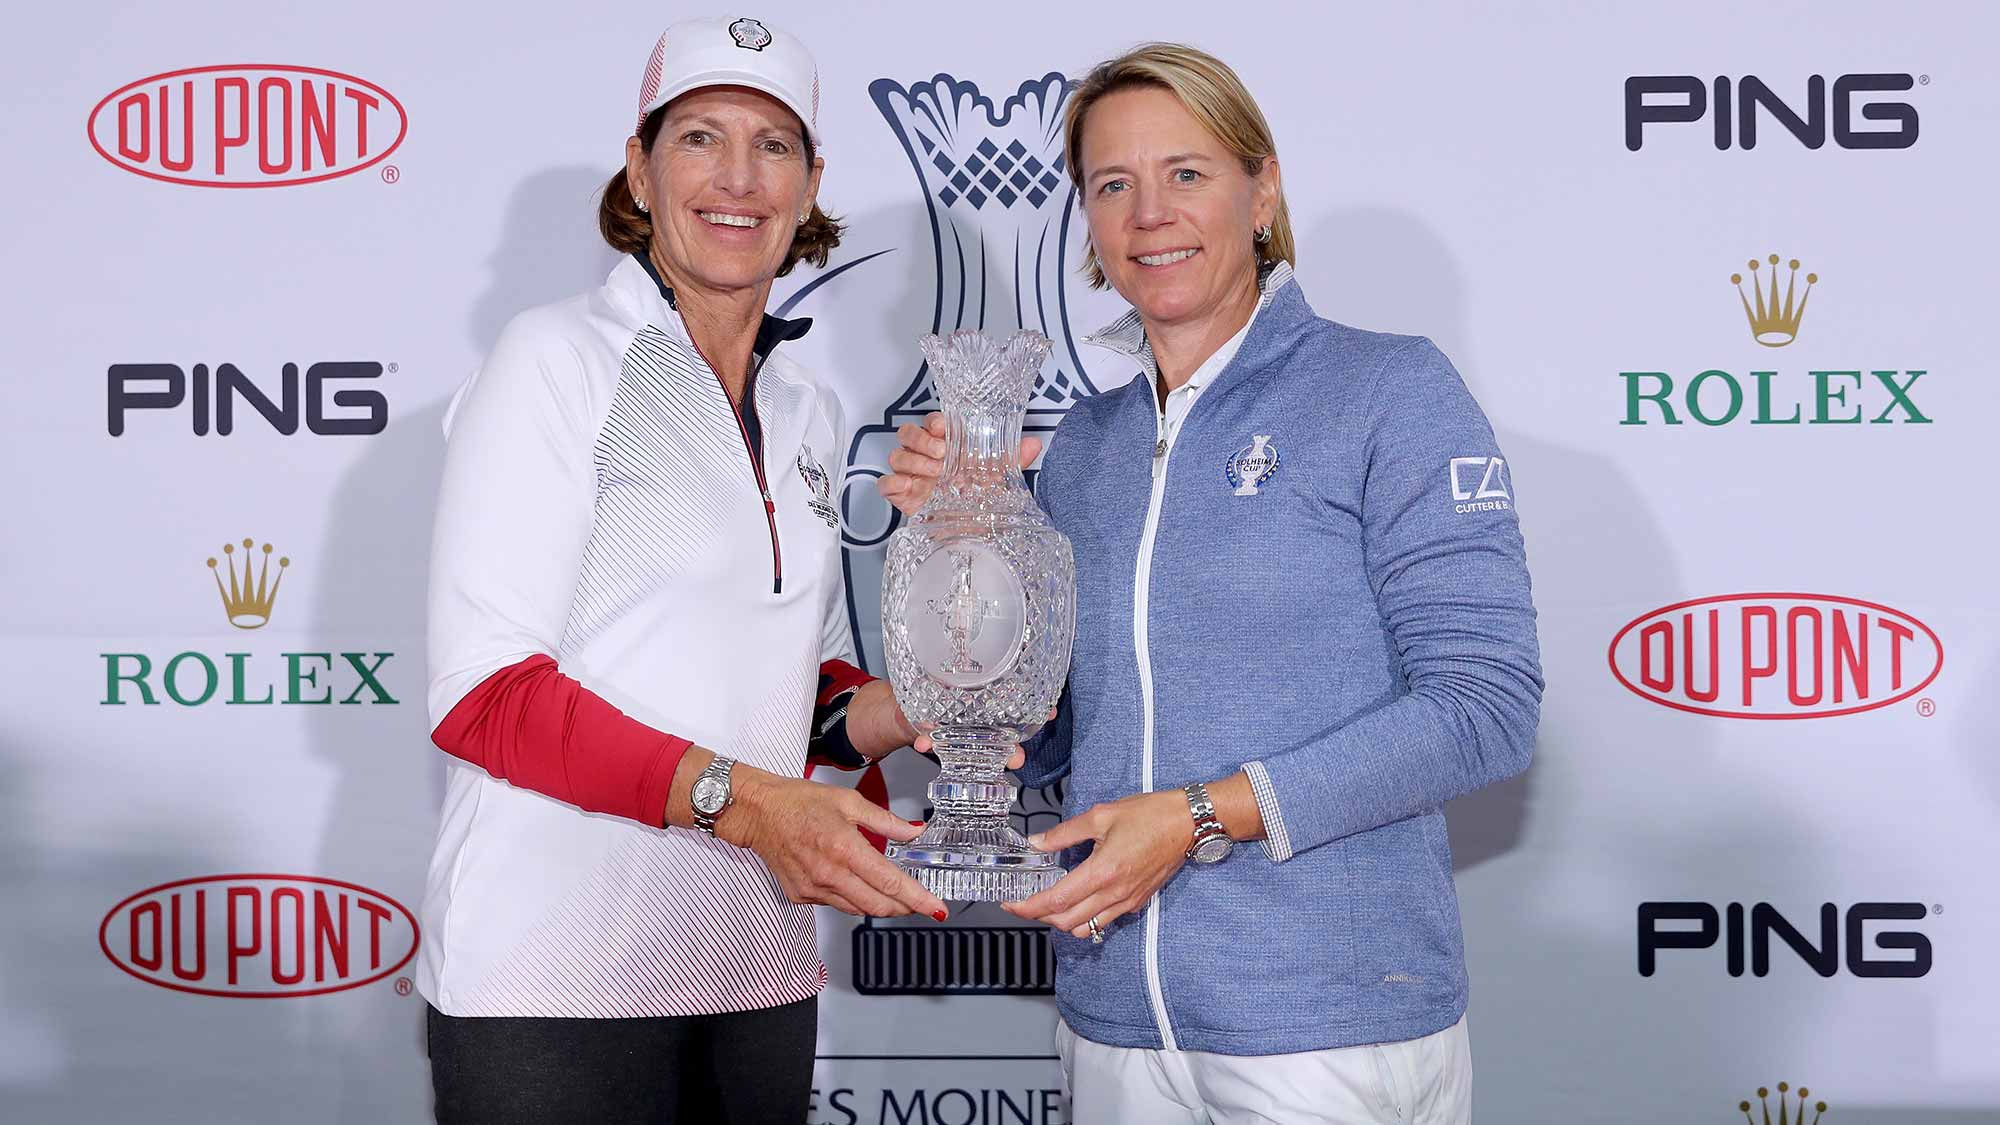 US, European Solheim Cup teams finalized with wildcard picks